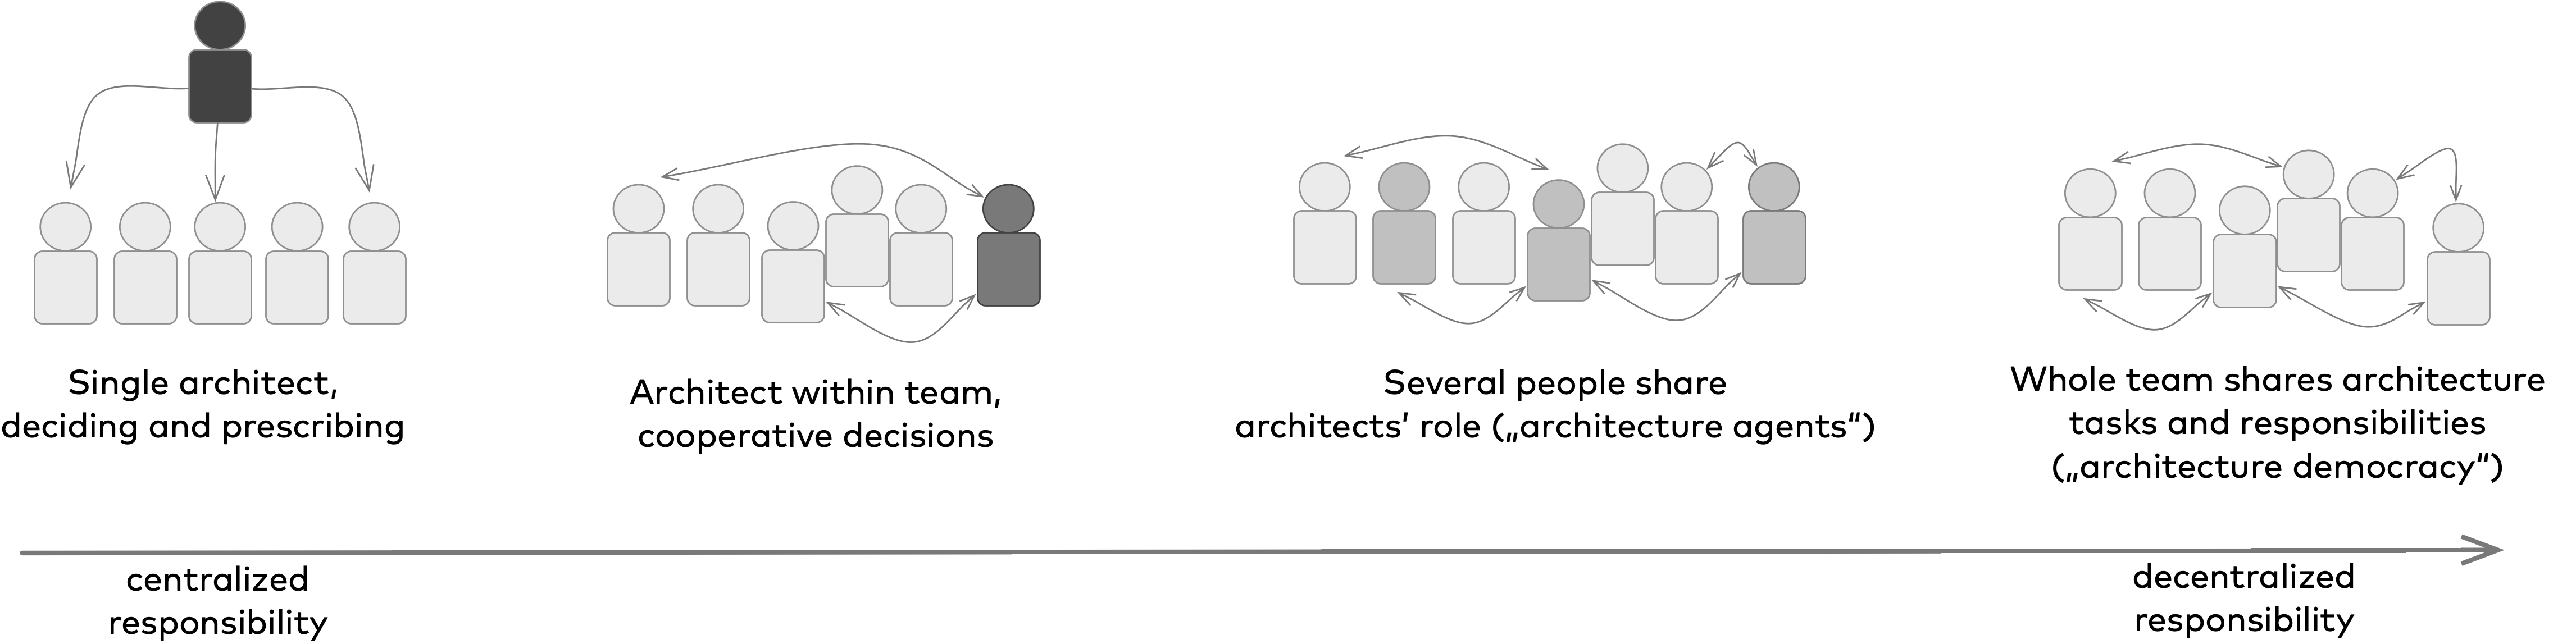 Spectrum of architecture role with centralized vs. decentralized responsibility